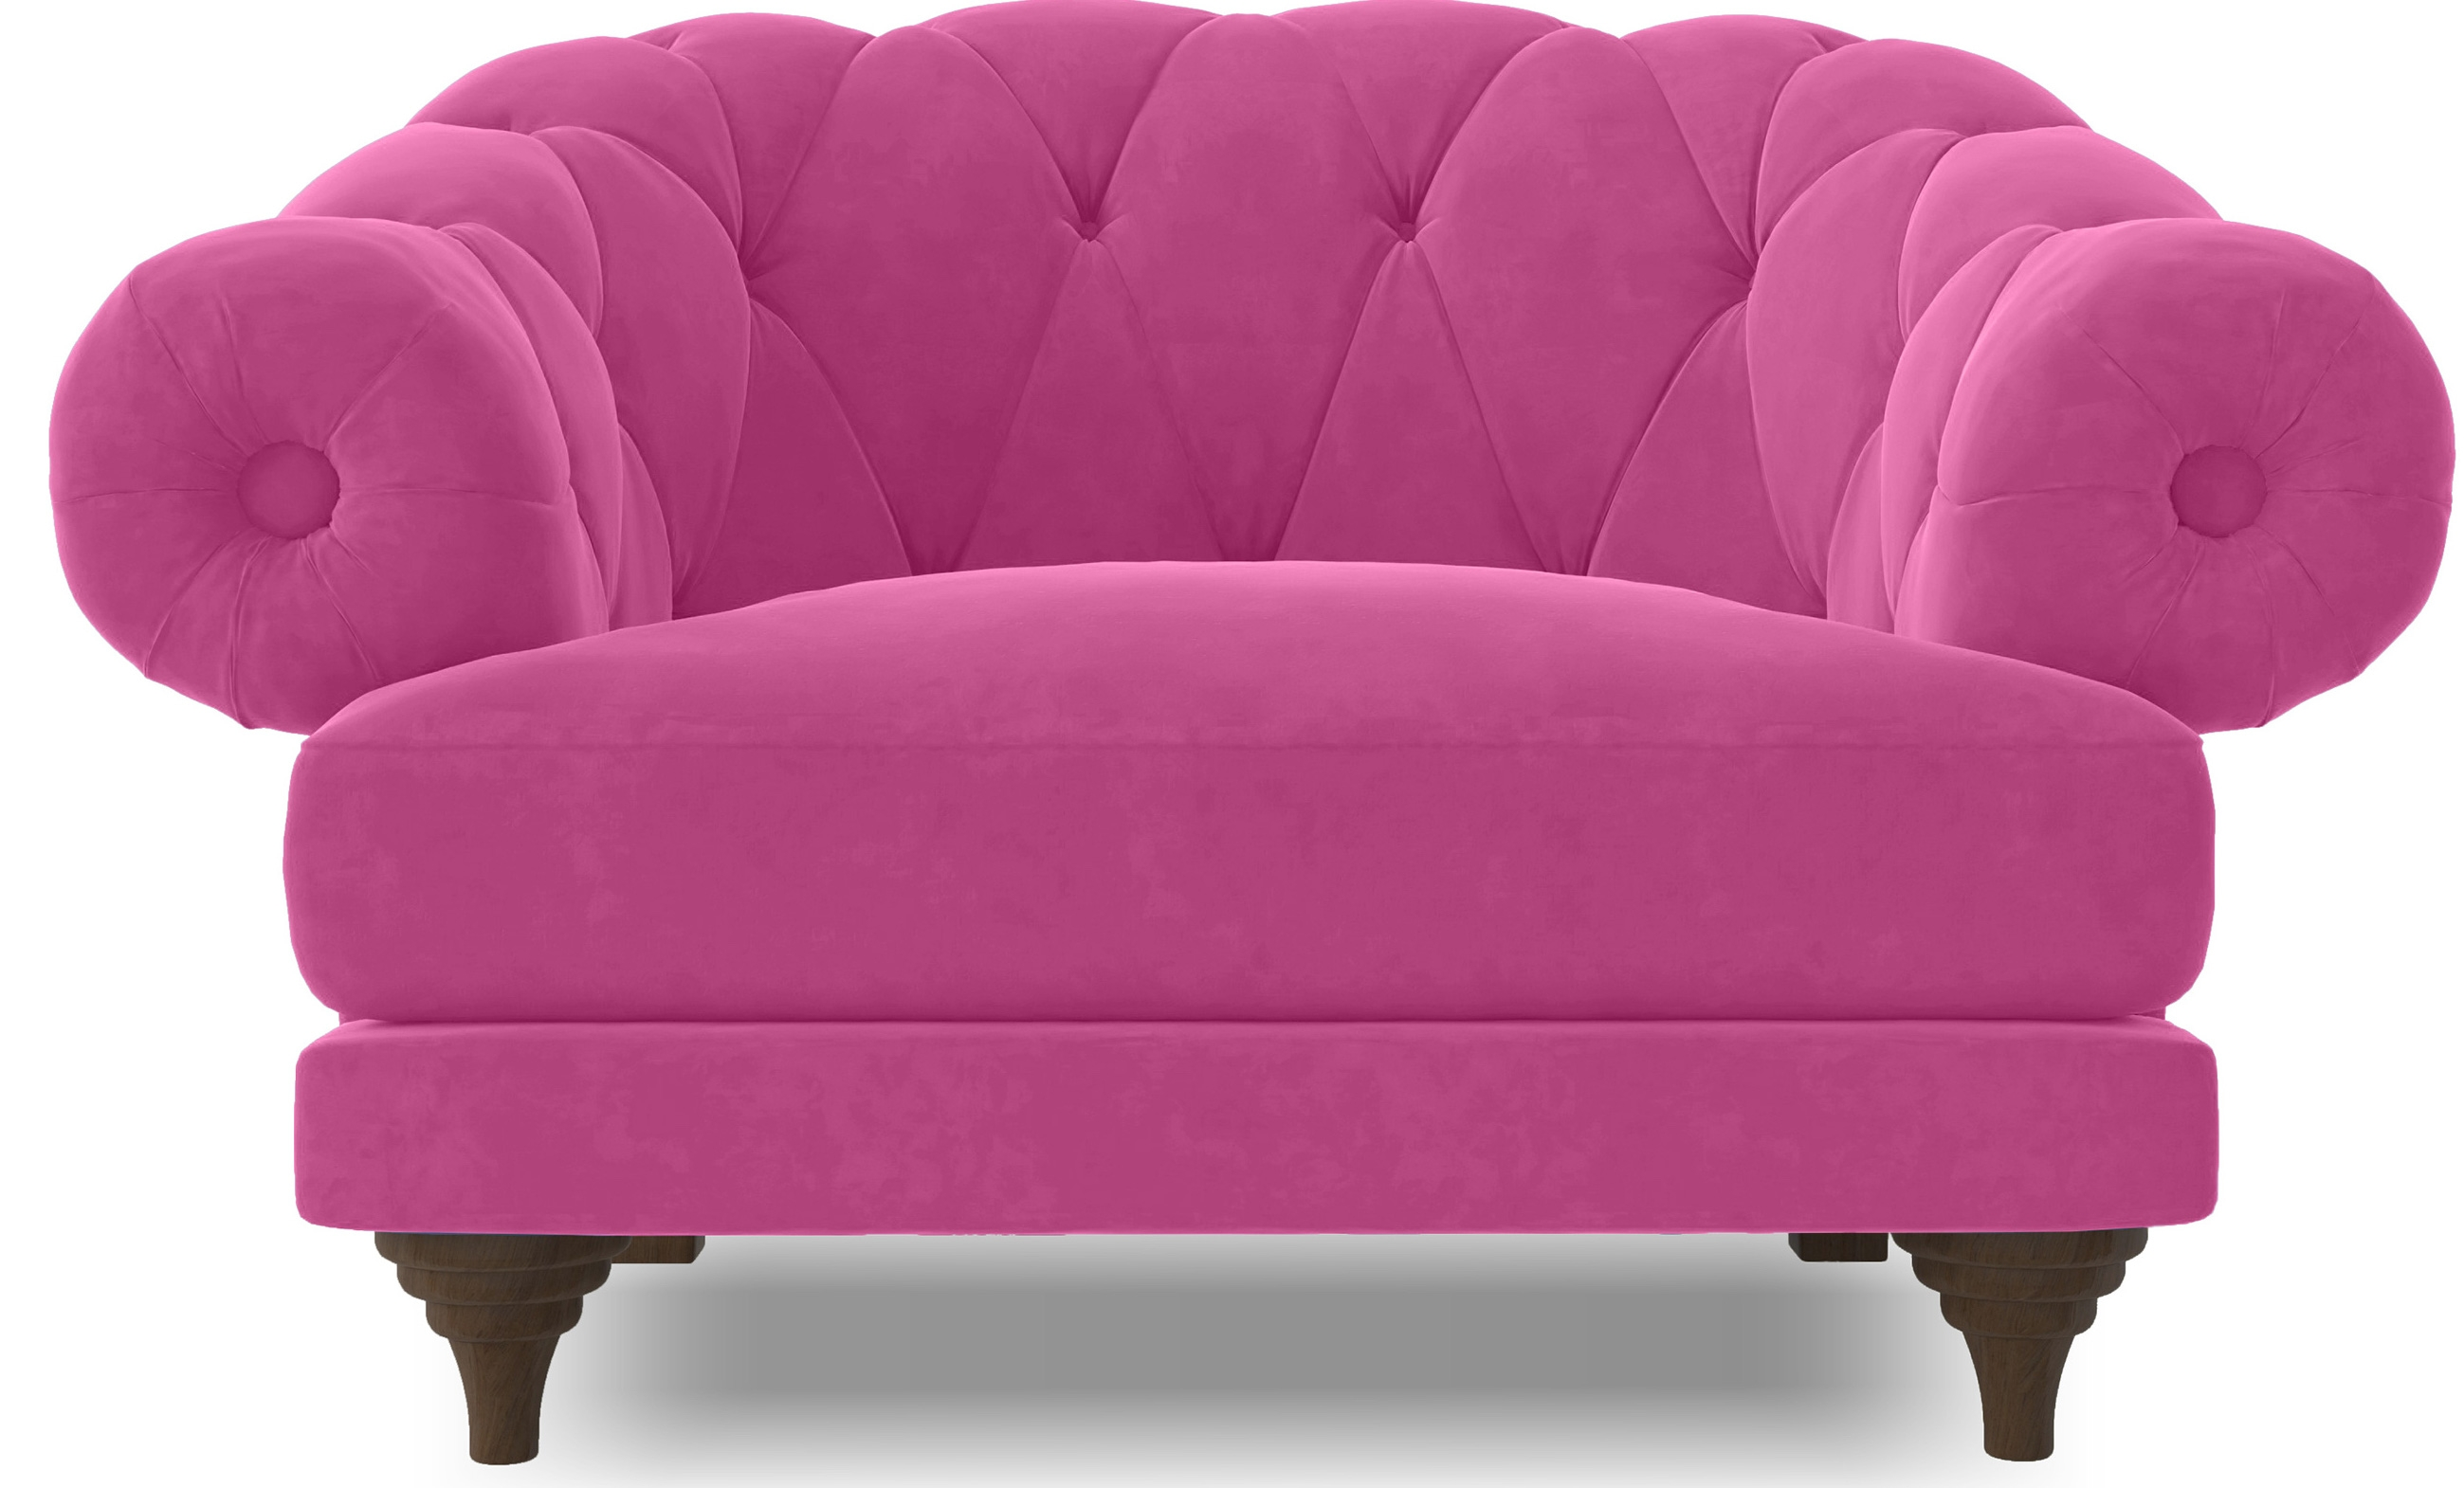 fauteuil ultra confortable velours rose chesterfield. Black Bedroom Furniture Sets. Home Design Ideas